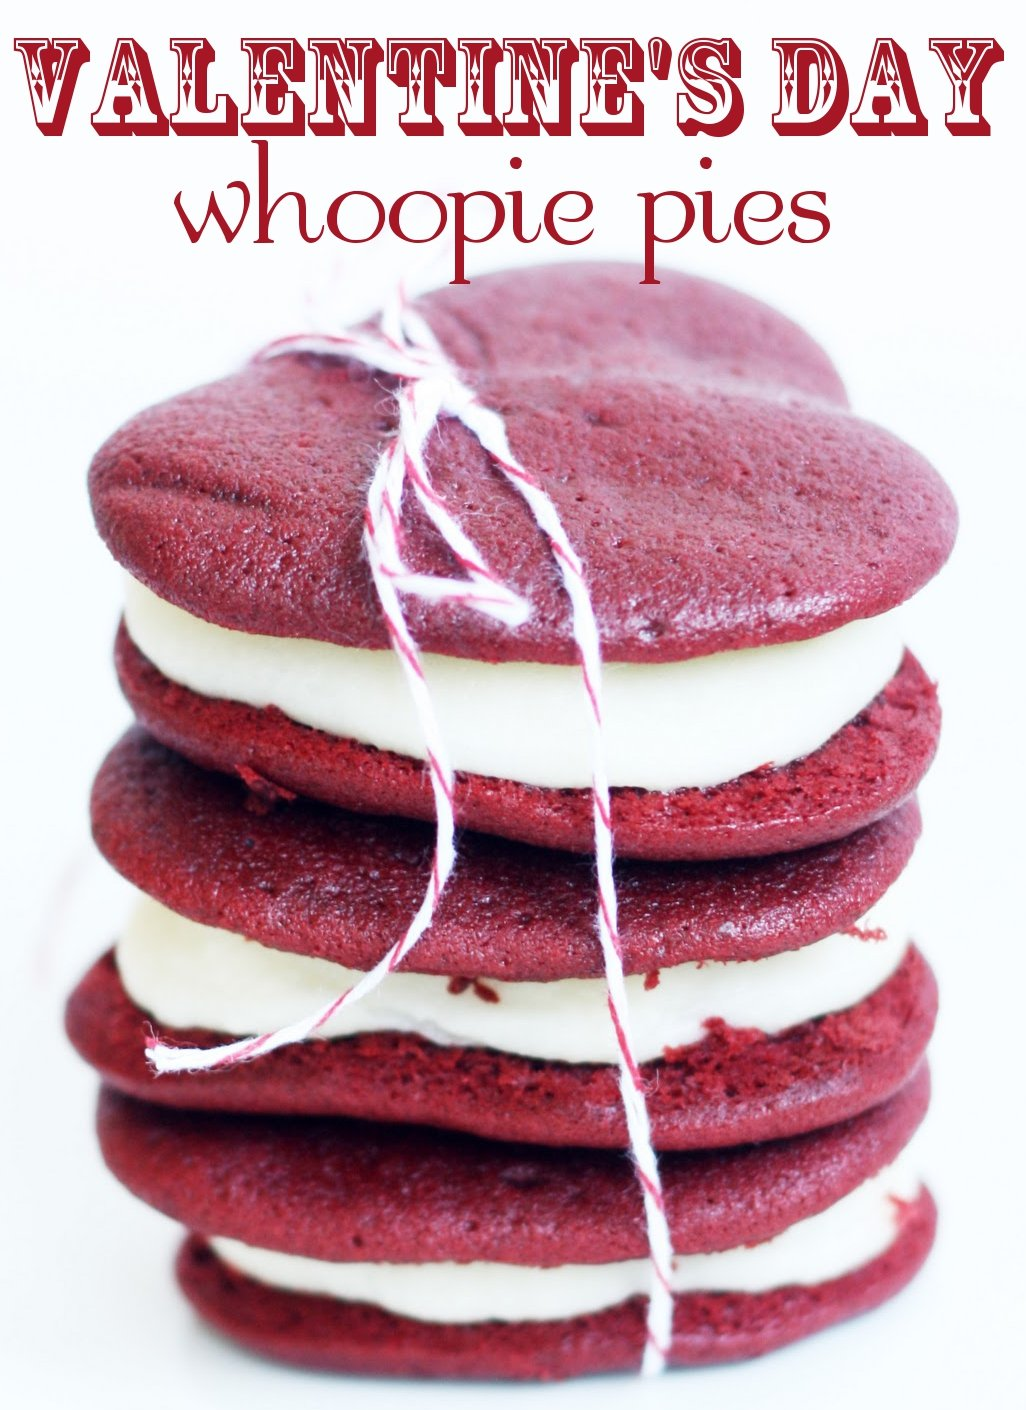 Heart Shaped Red Velvet Whoopie Pies | Pizzazzerie